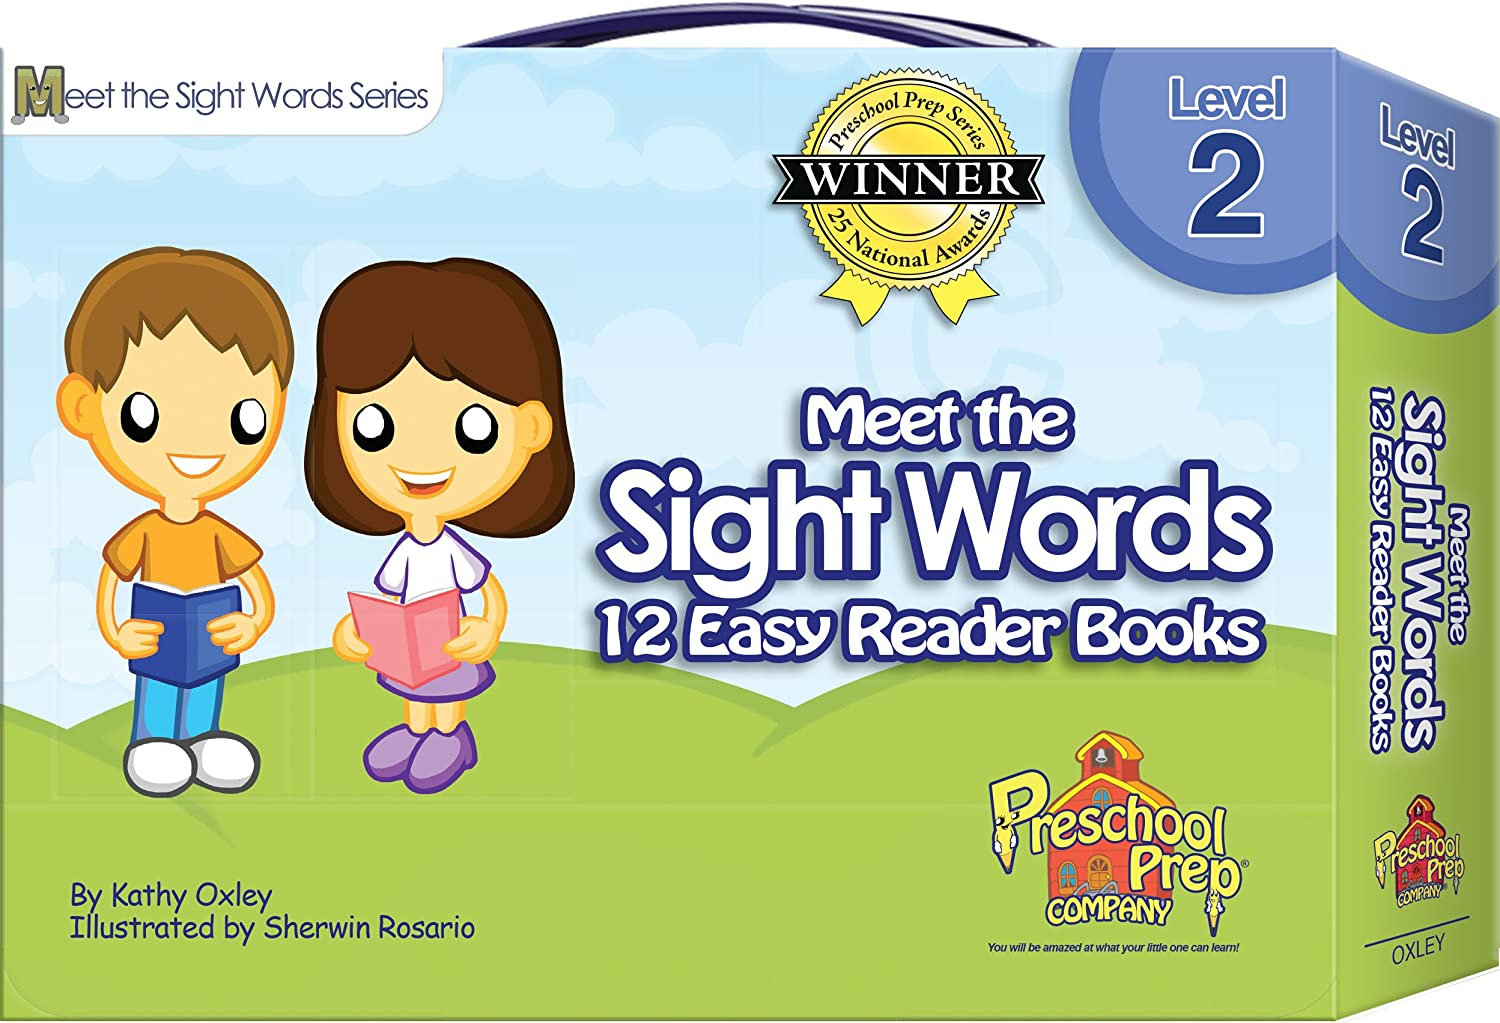 Amazon.com: Meet the Sight Words - Level 2 - Easy Reader Books ...